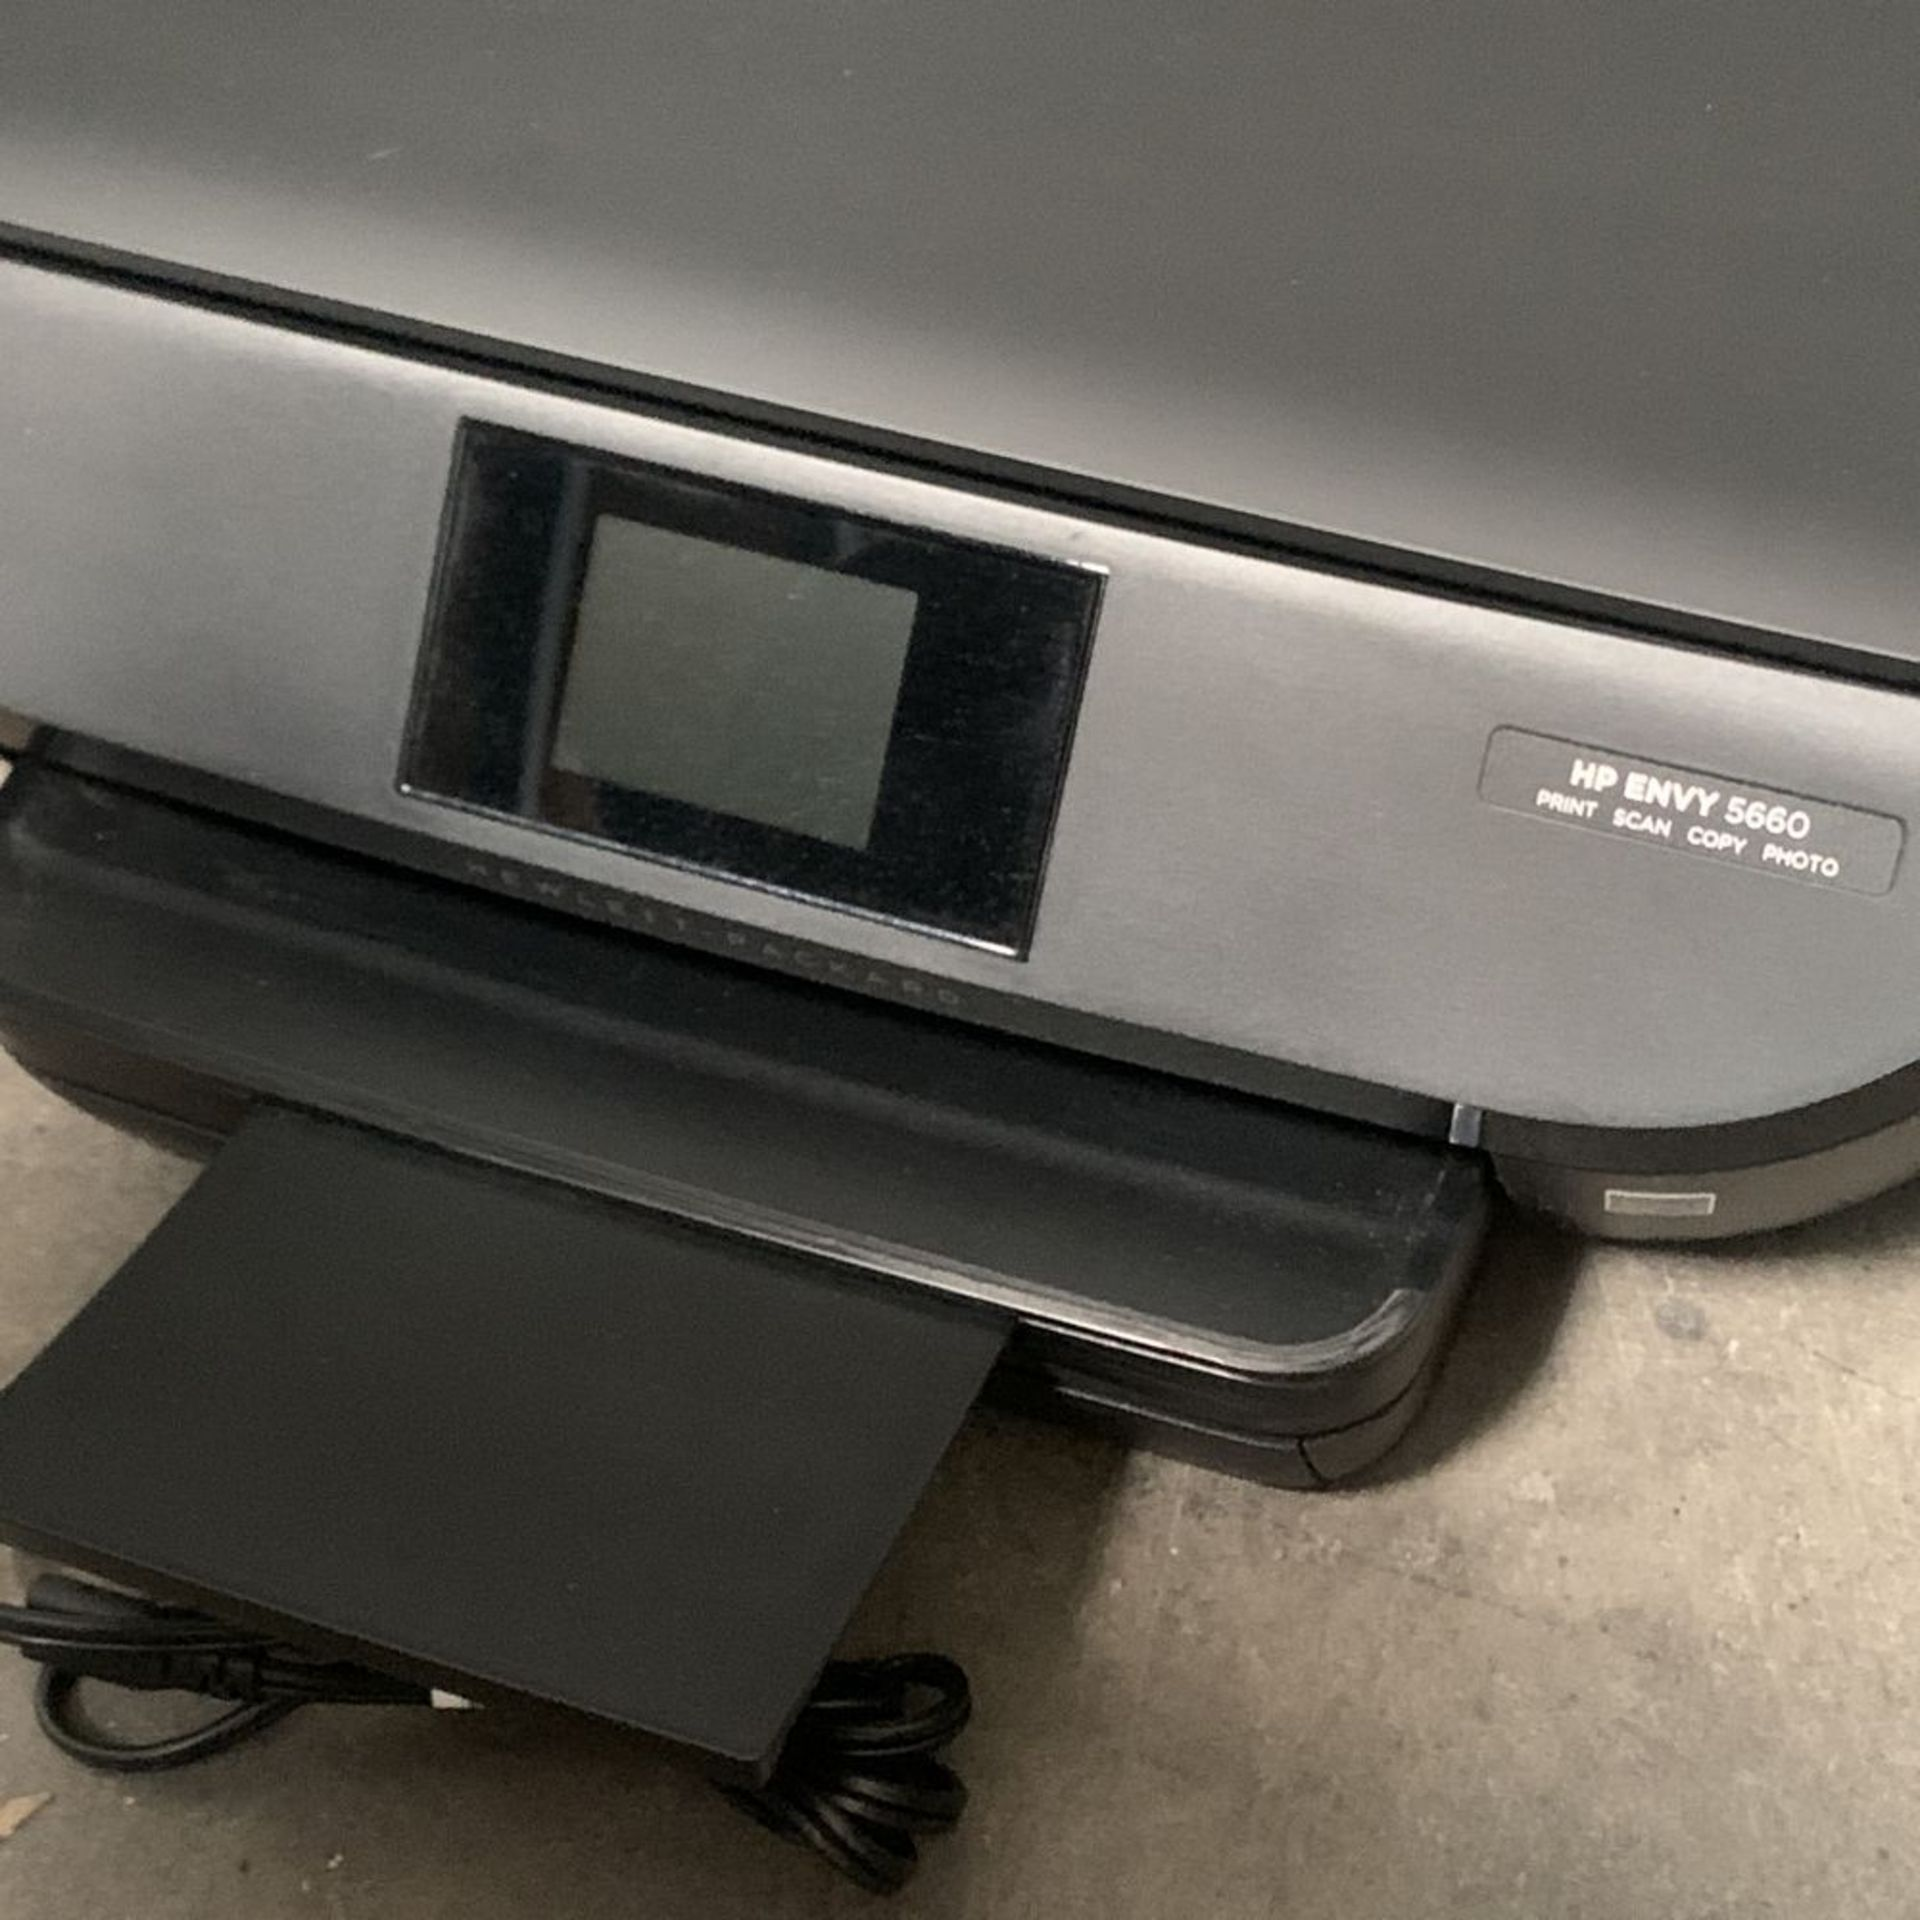 Lot 187 - HP ENVY 5660 All in One Printer Scanner Copier Photo, Flatbed Scanner, Energy Star